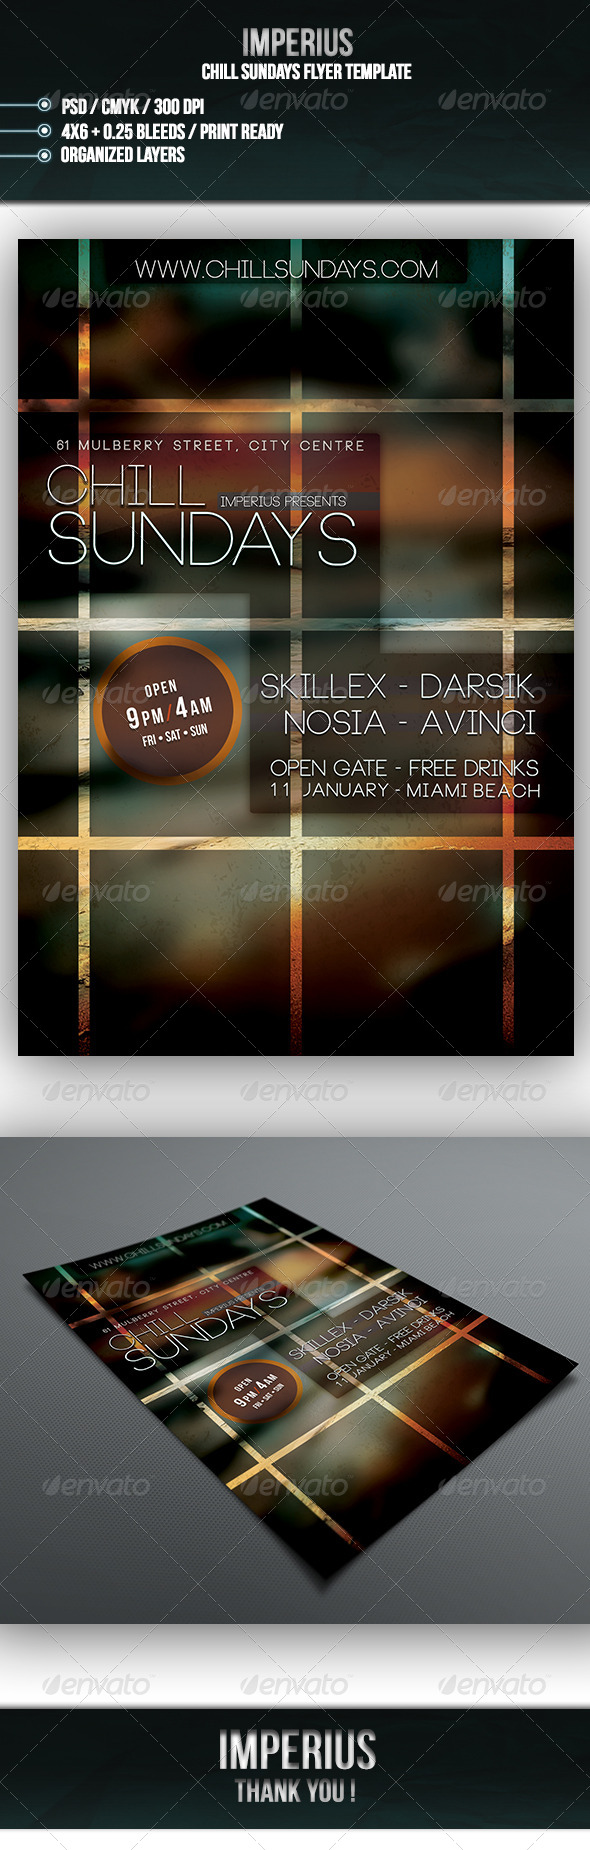 GraphicRiver Chill Sundays Flyer 7067950